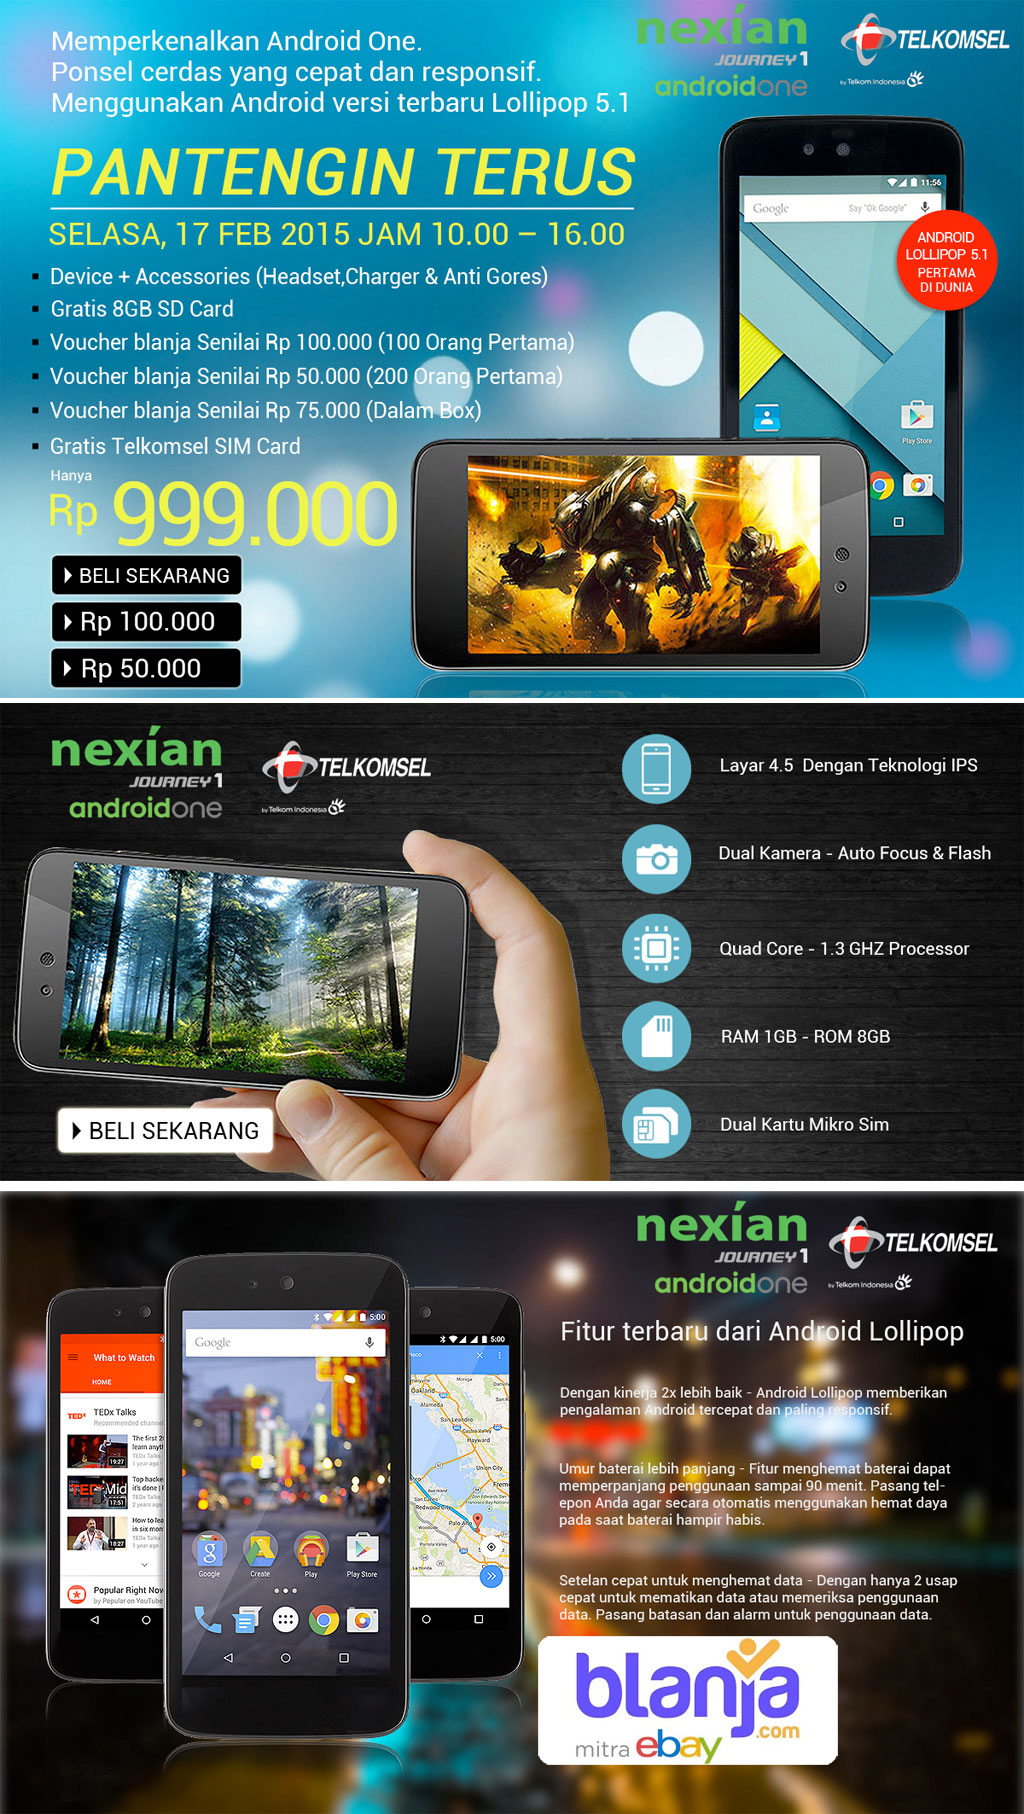 produk official website nexian indonesia